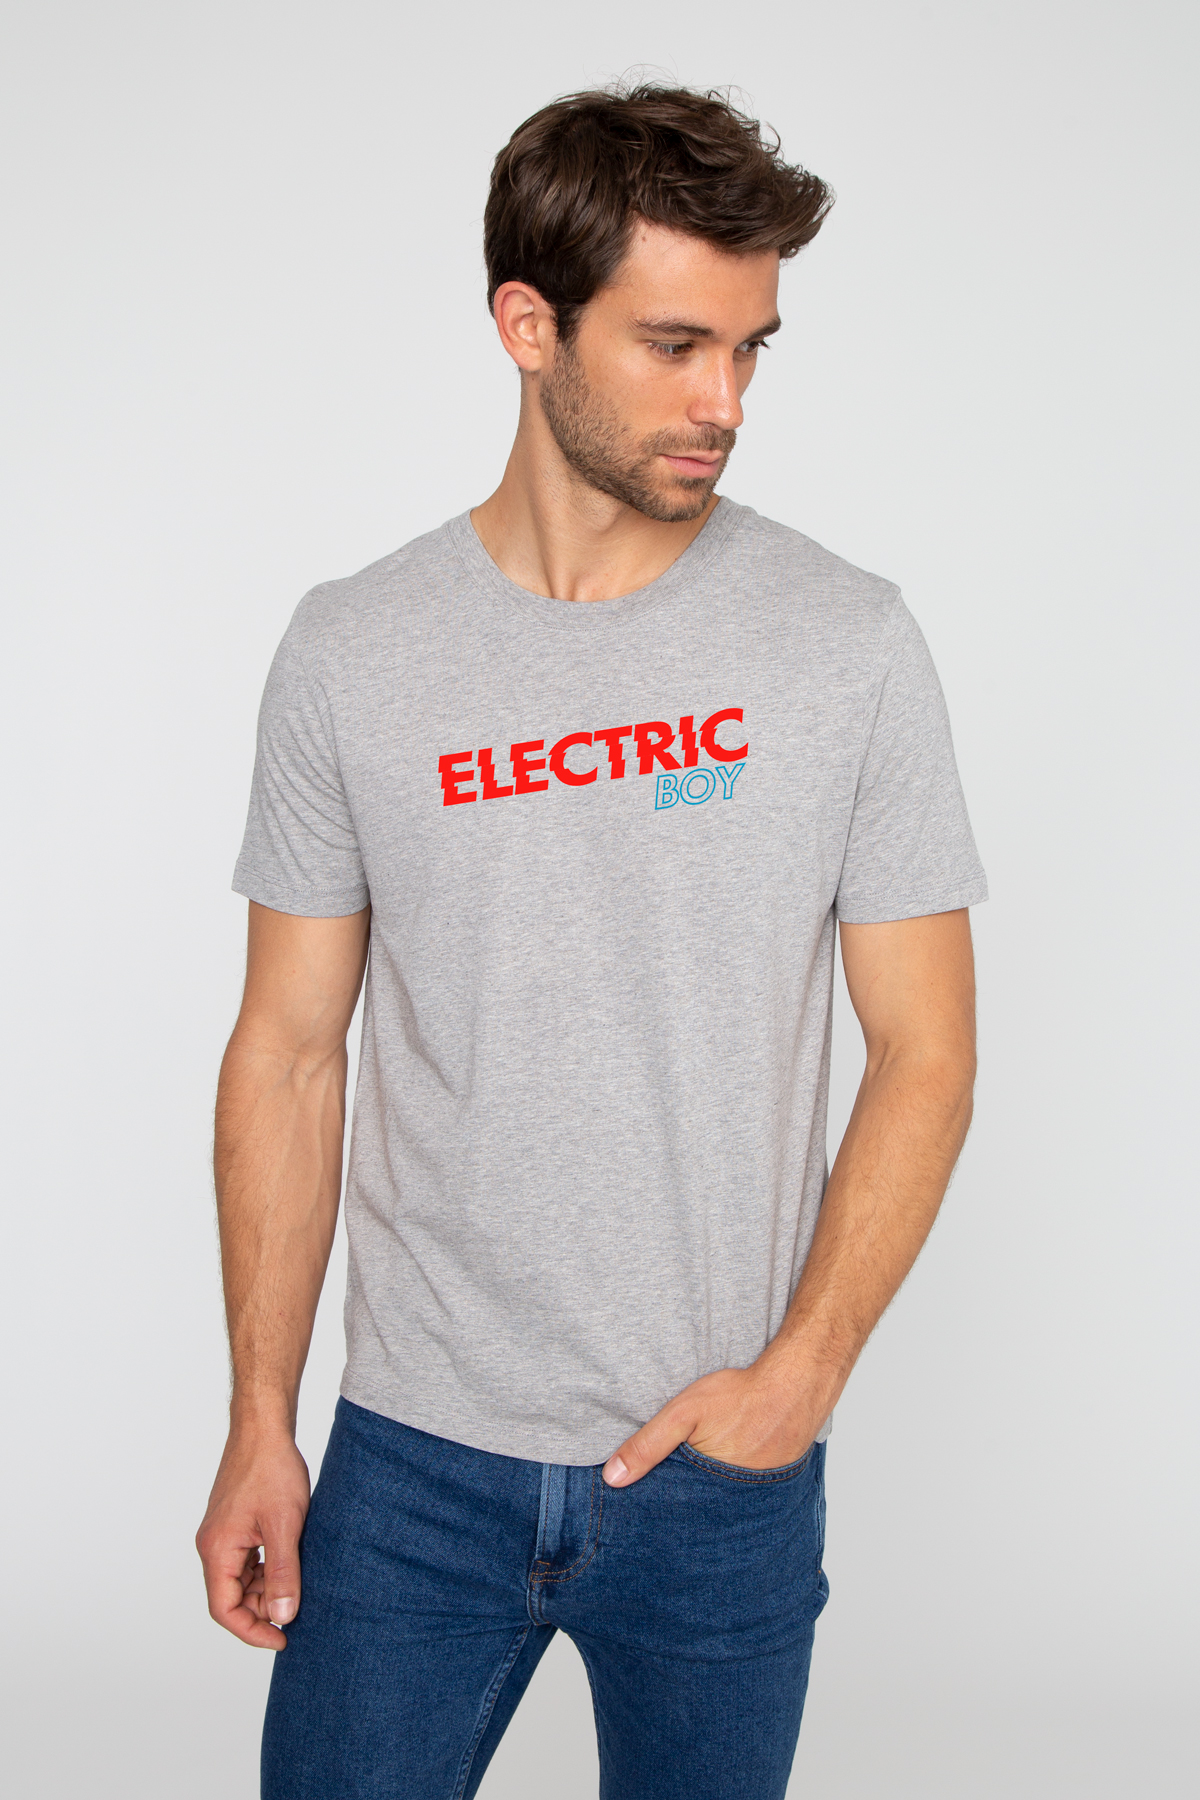 Tshirt ELECTRIC BOY